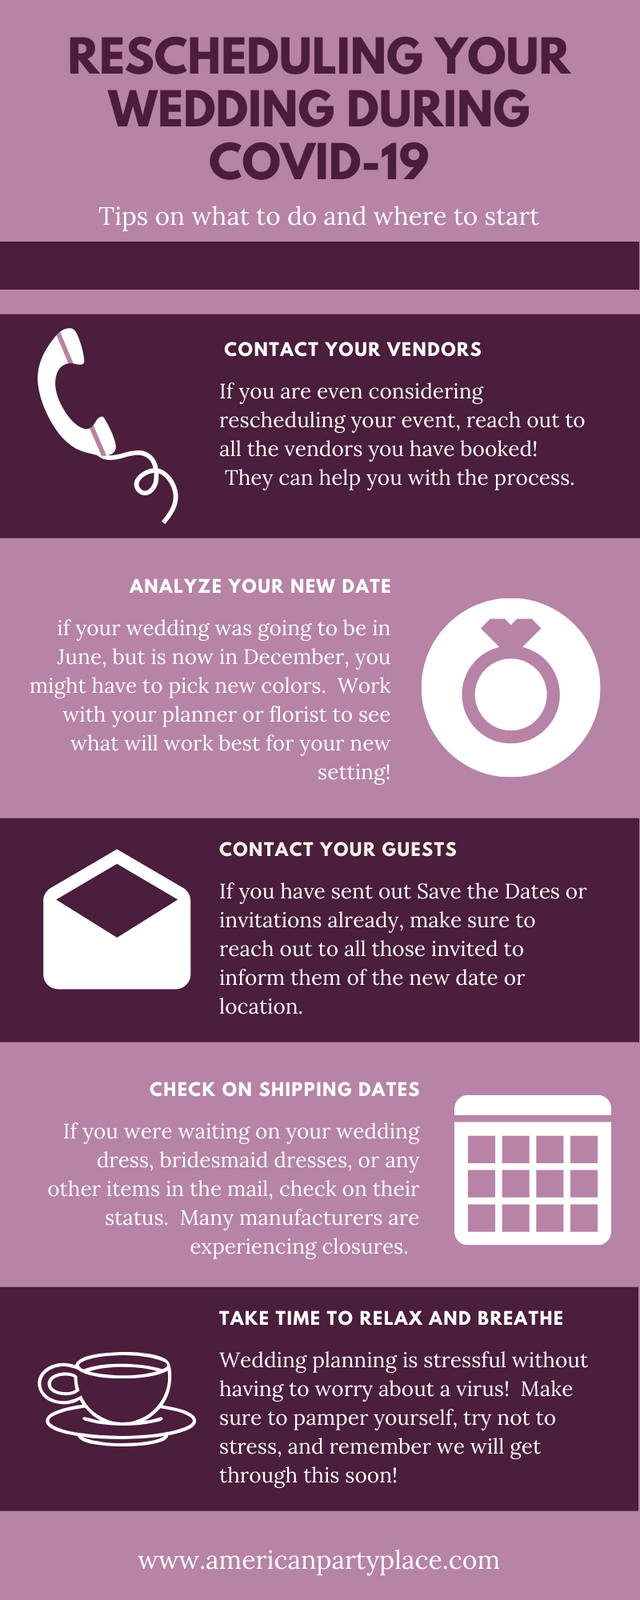 Tips for Rescheduling your Wedding due to COVID-19